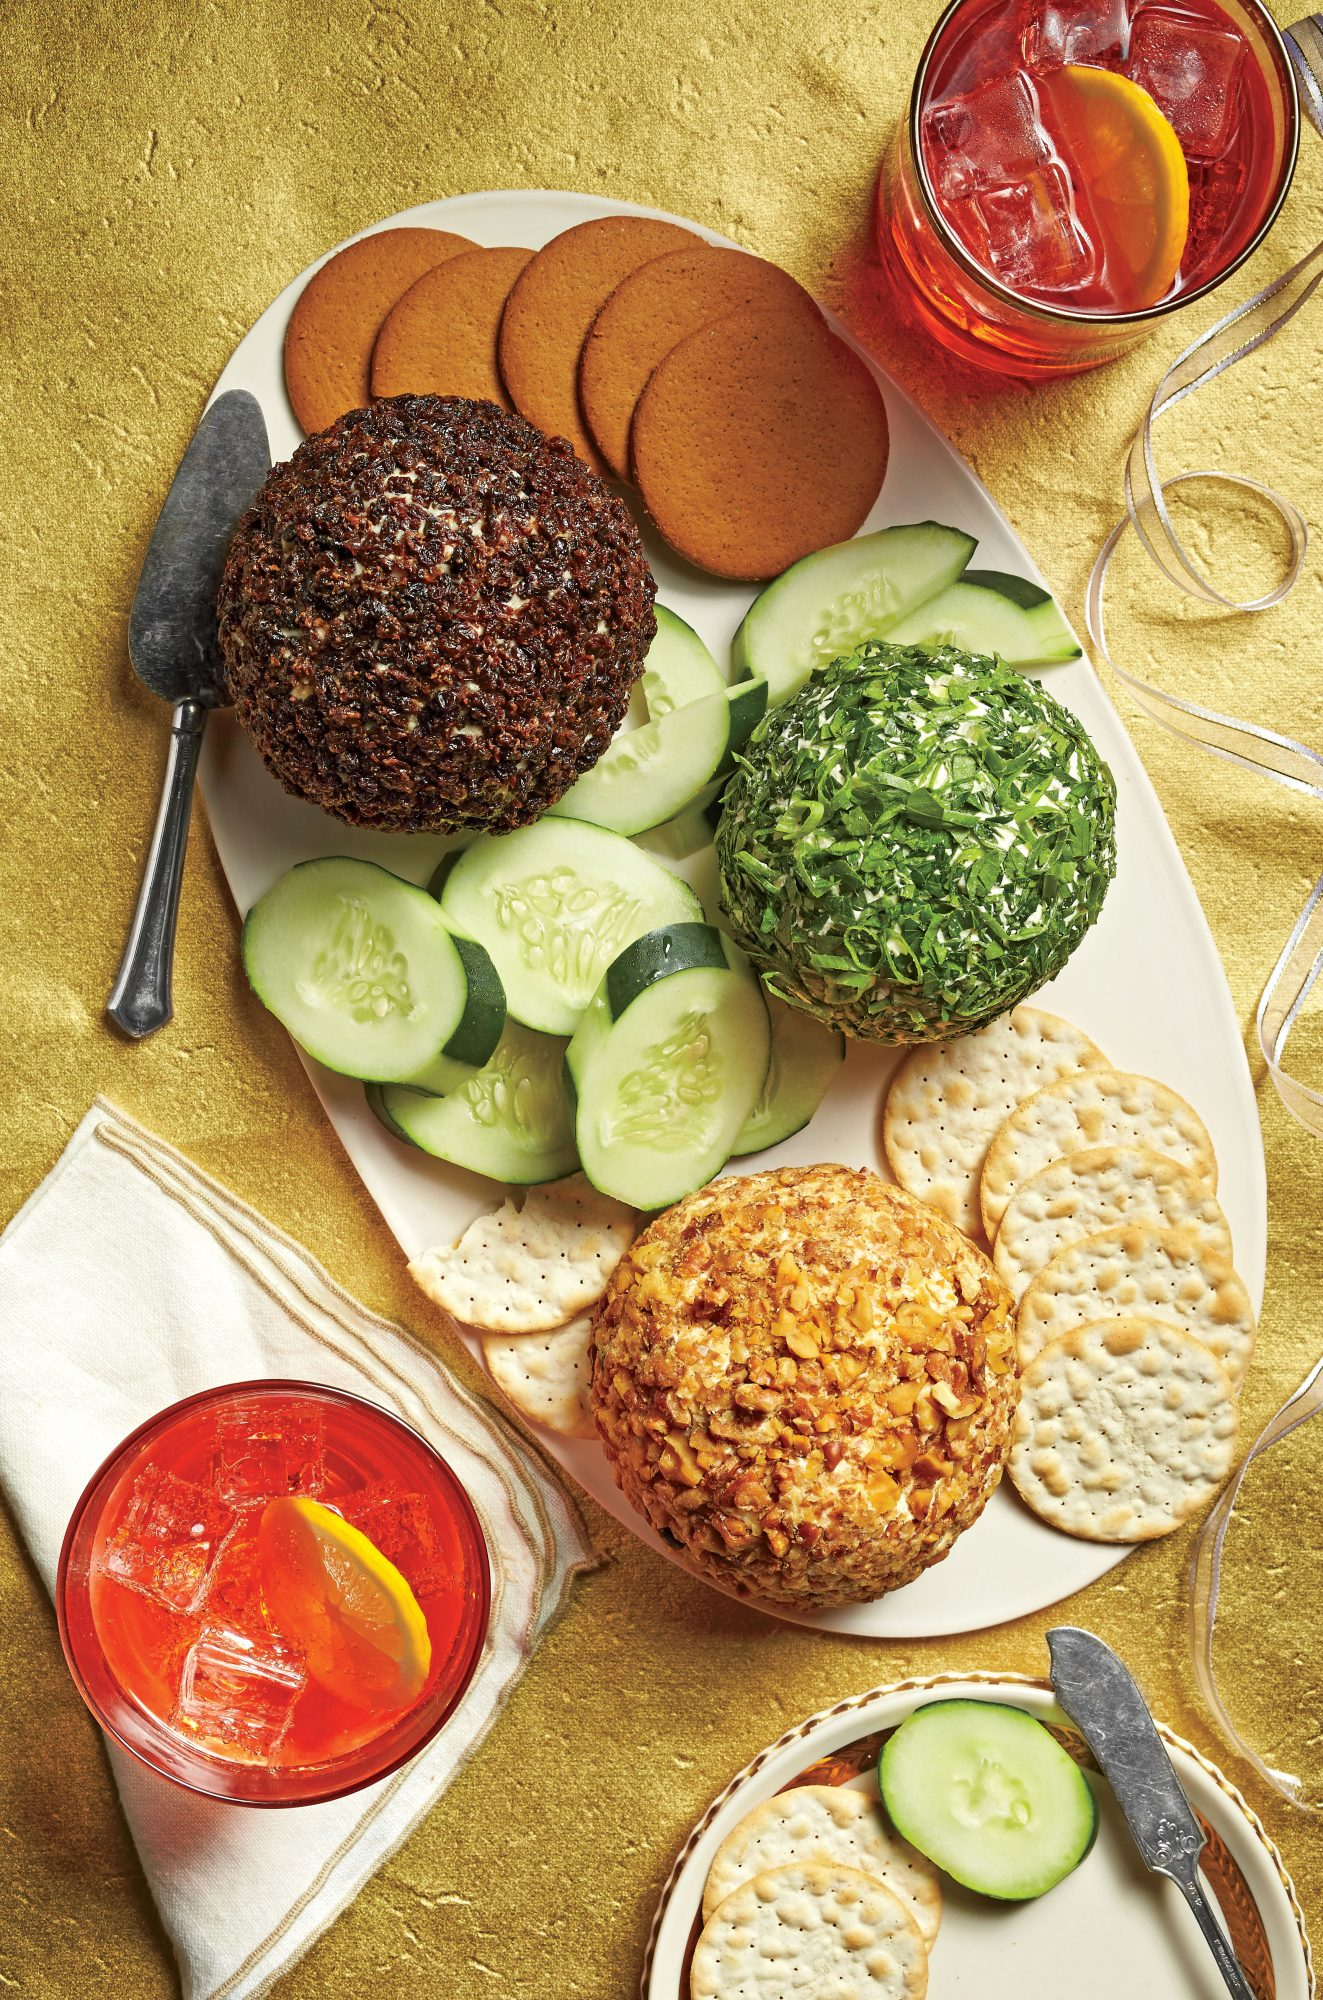 Cheddar-Horseradish-Walnut Cheese Ball